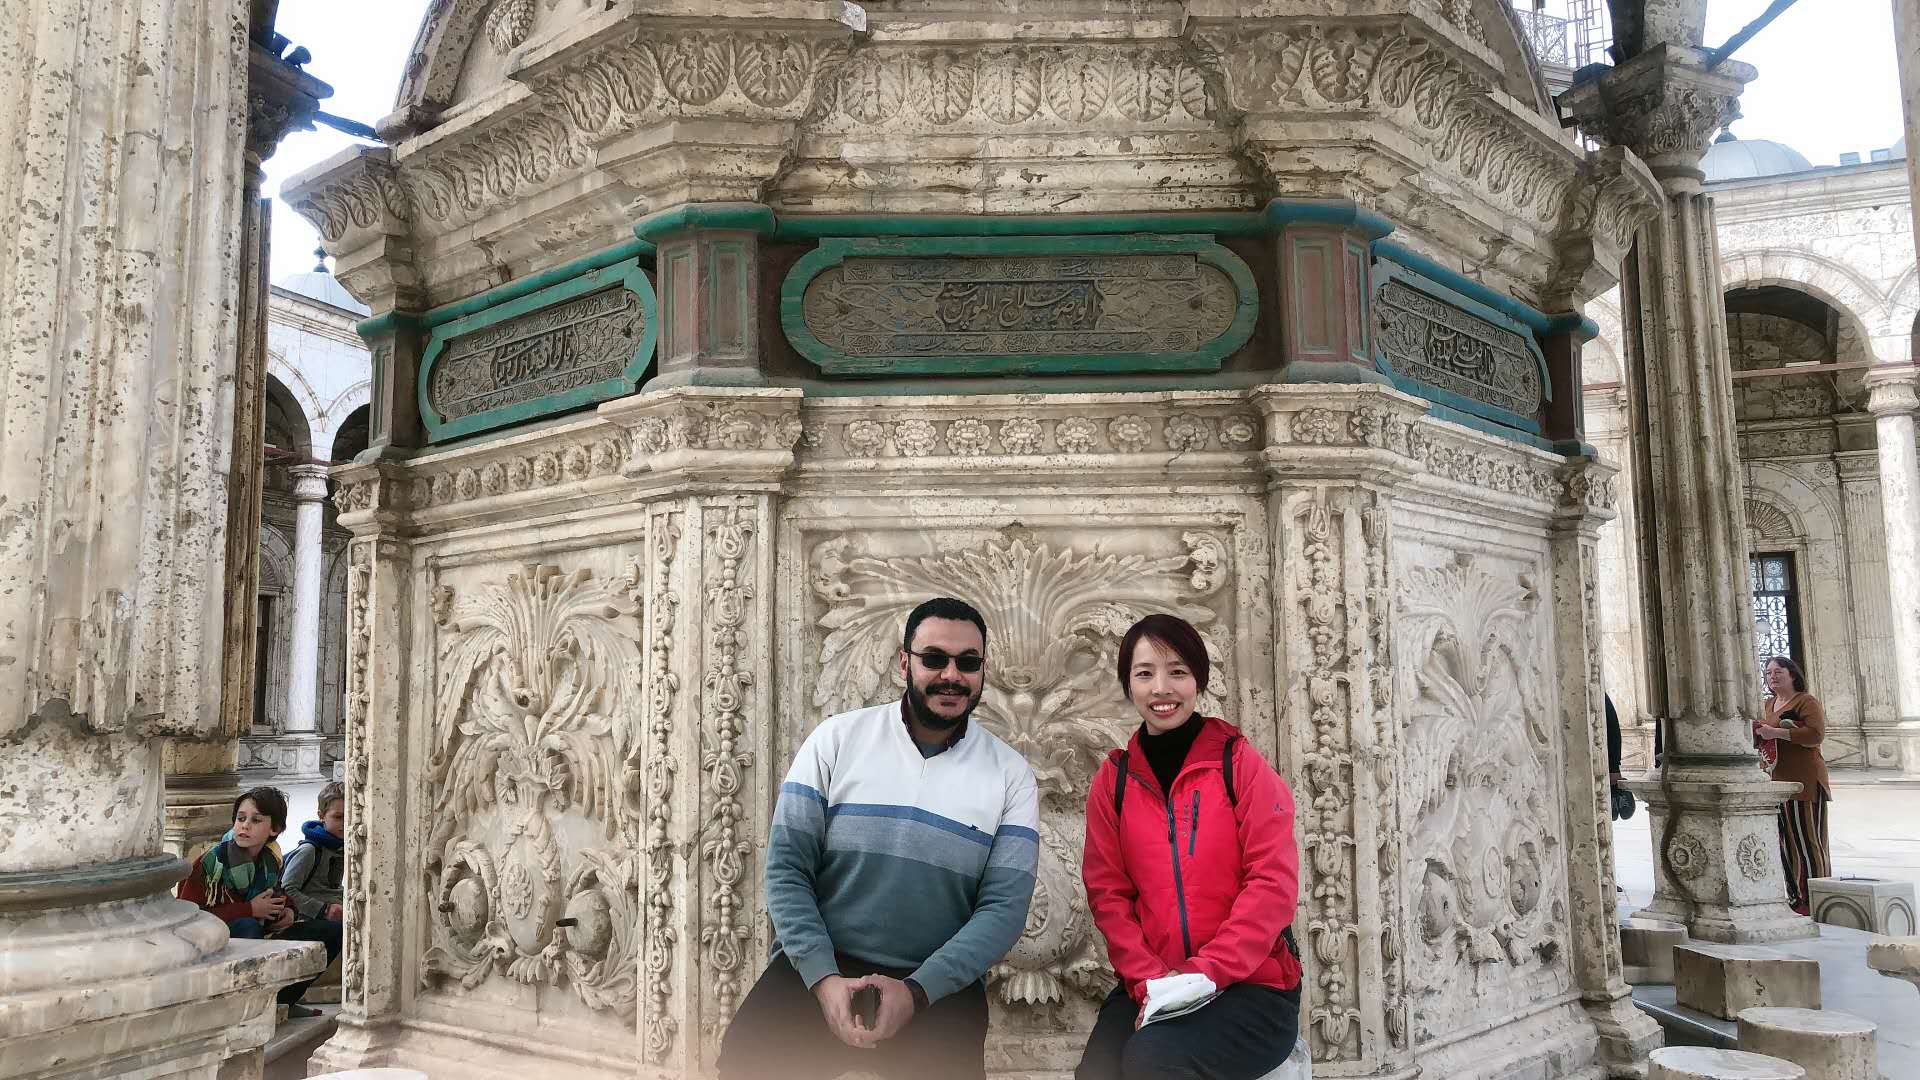 cleints took to tour in City Cairo